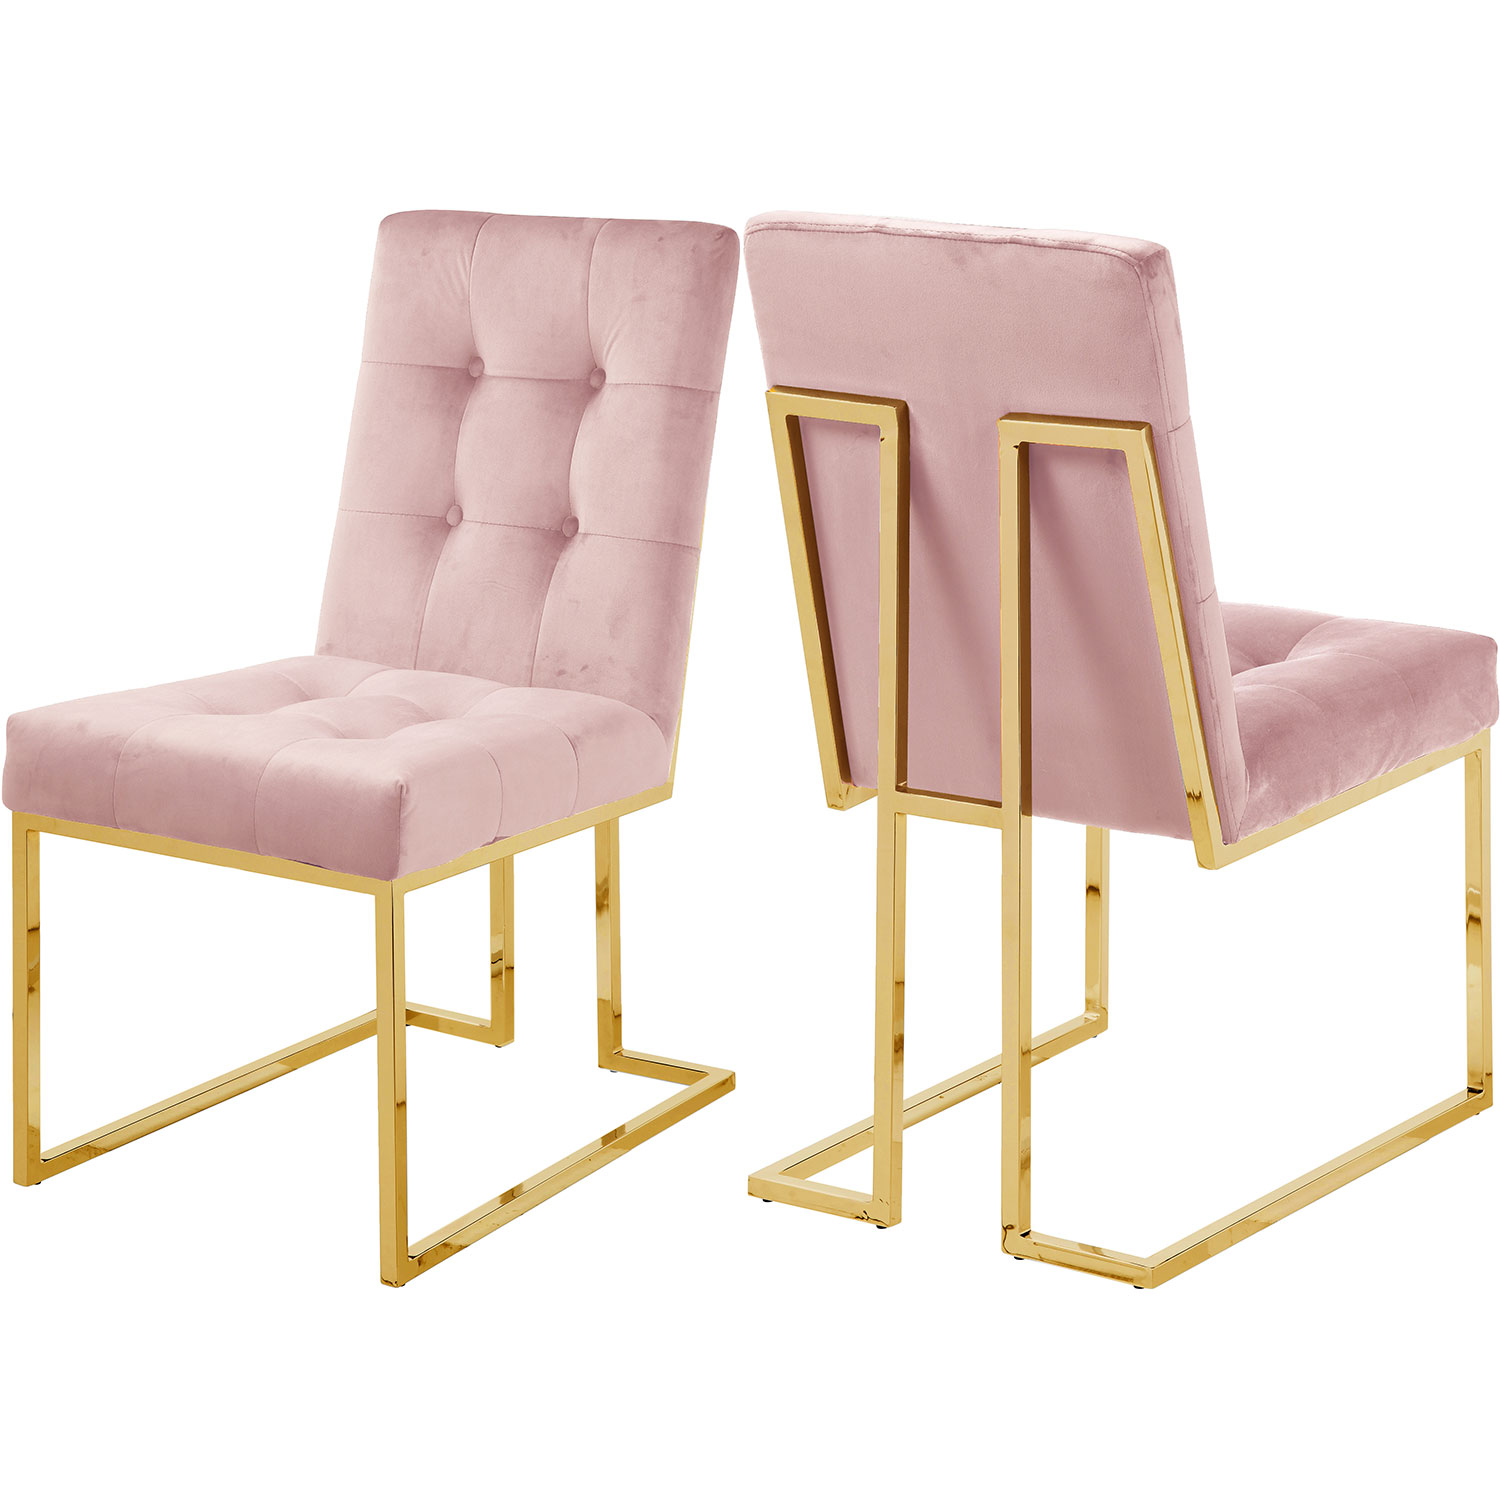 Enjoyable Pierre Dining Chair In Tufted Pink Velvet On Gold Stainless Steel Set Of 2 By Meridian Furniture Uwap Interior Chair Design Uwaporg